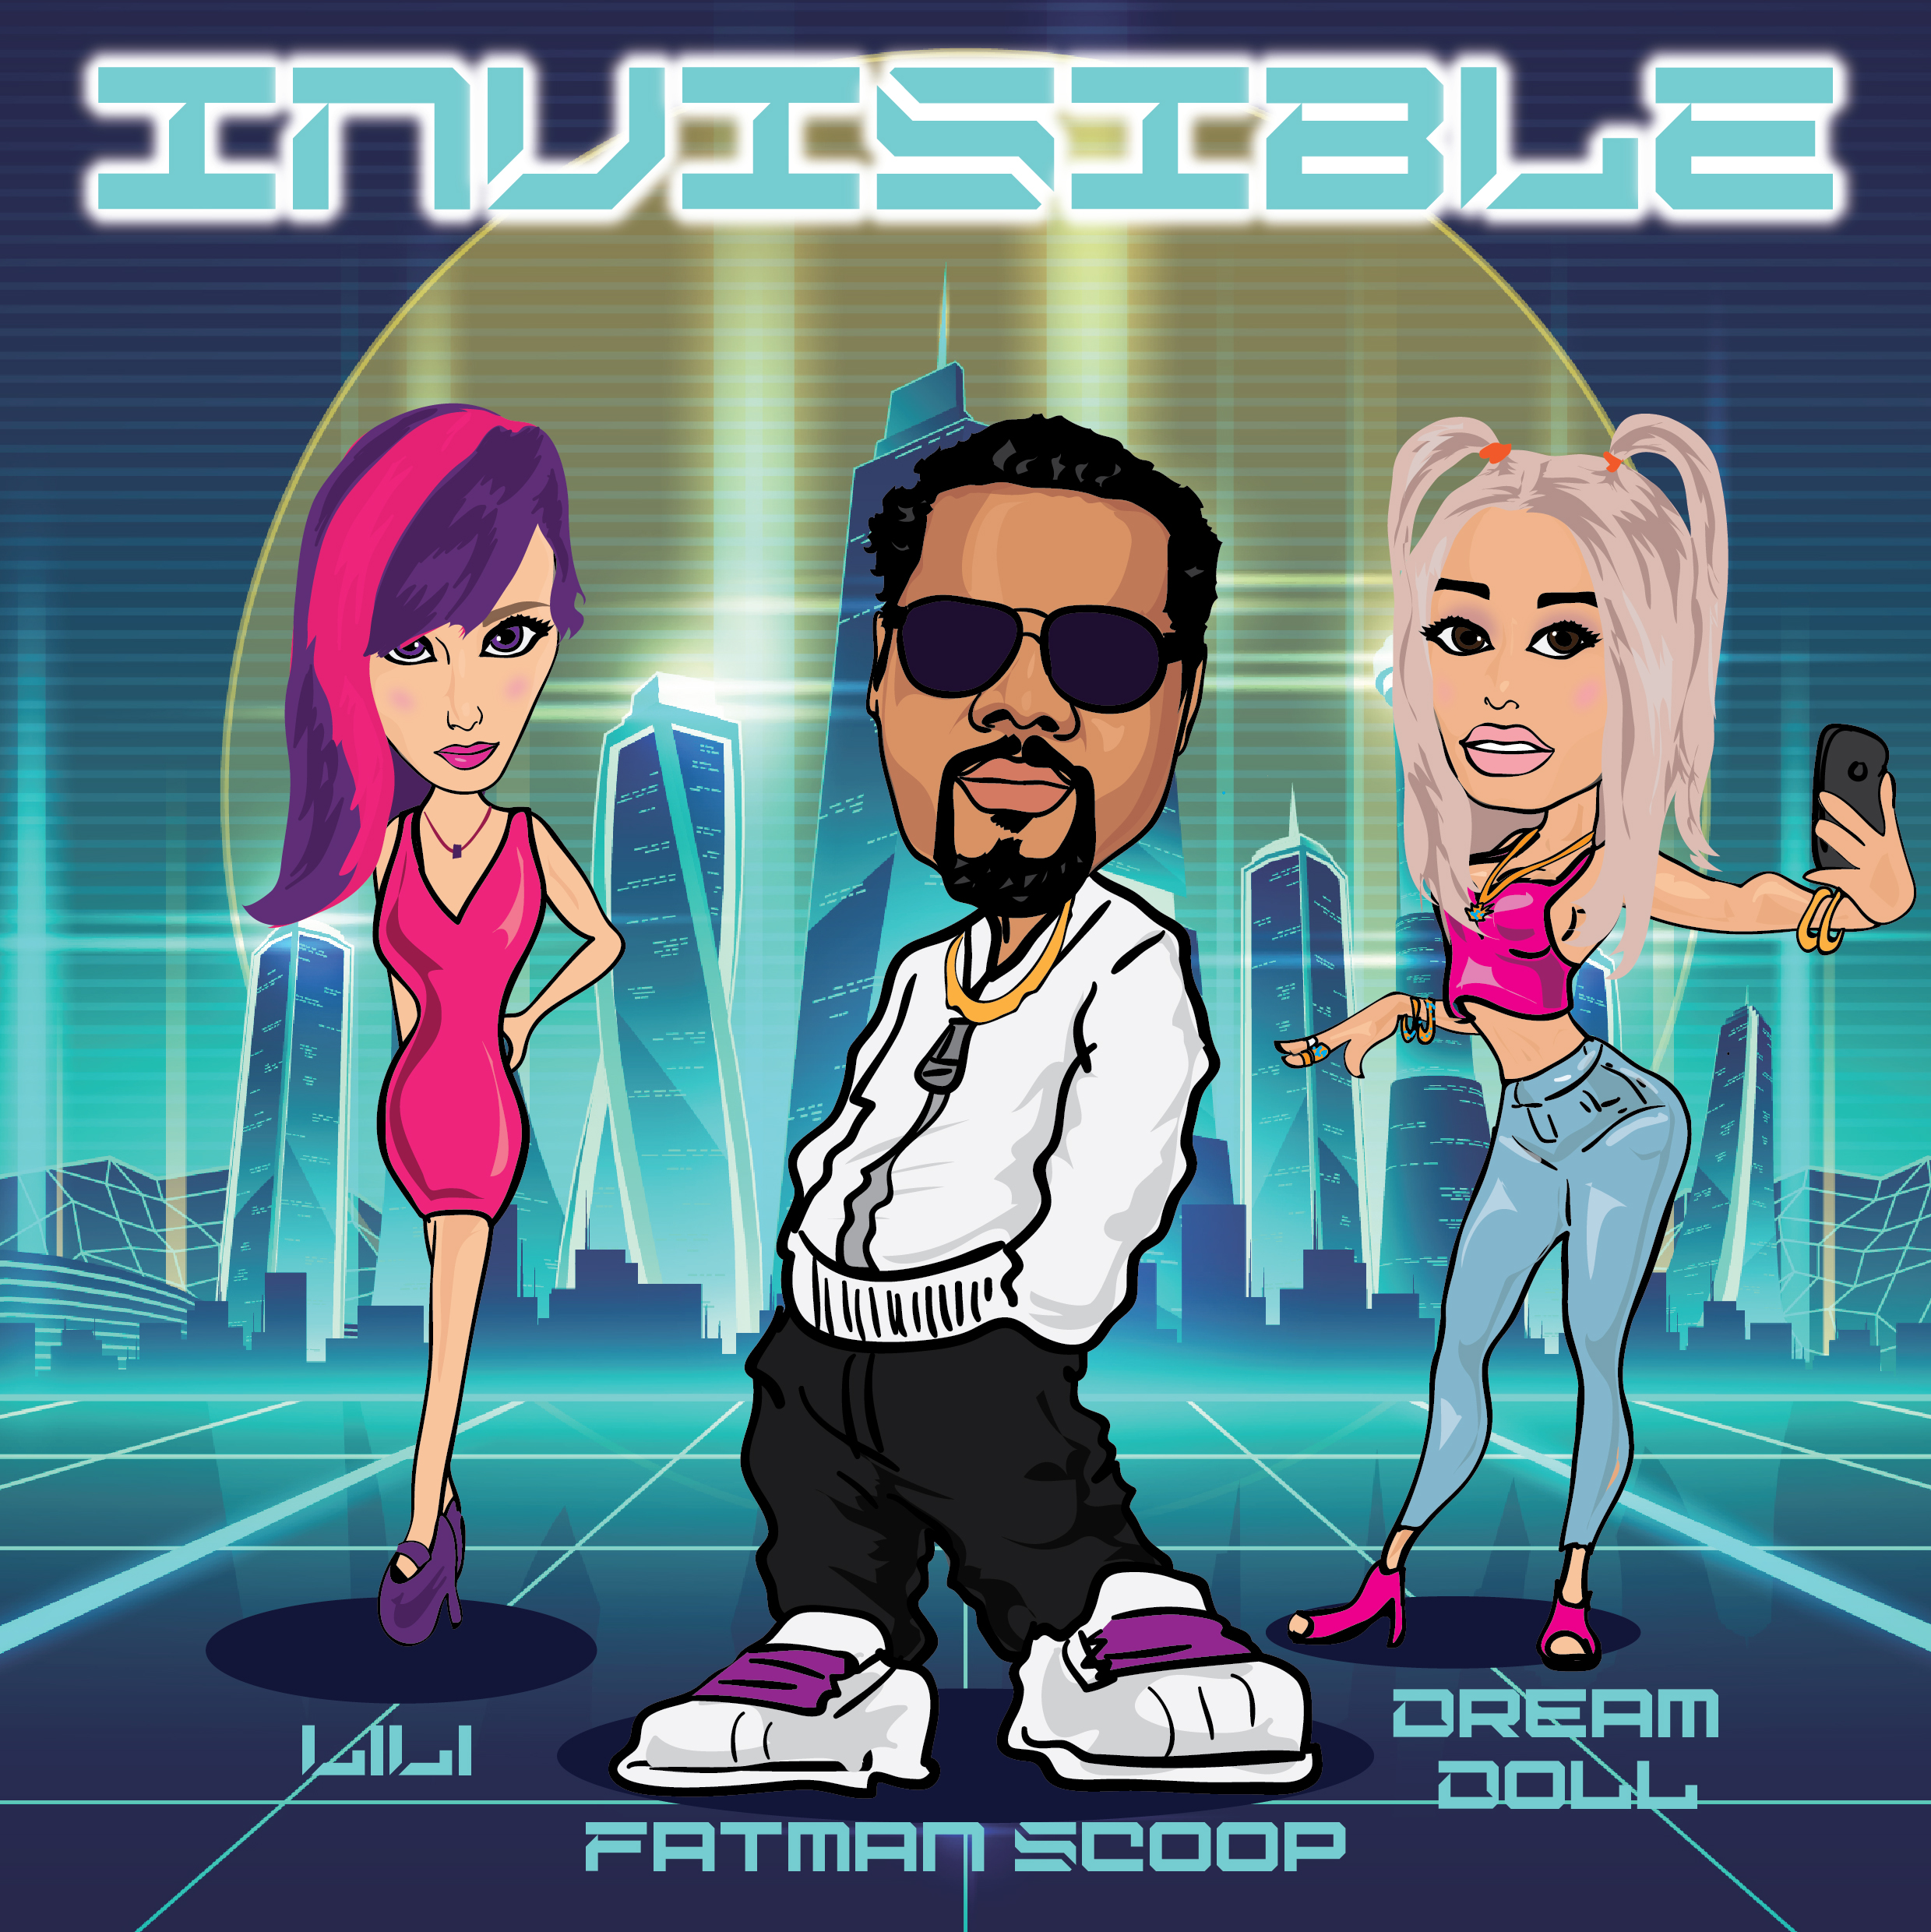 INVISIBLE (Clean version) Image